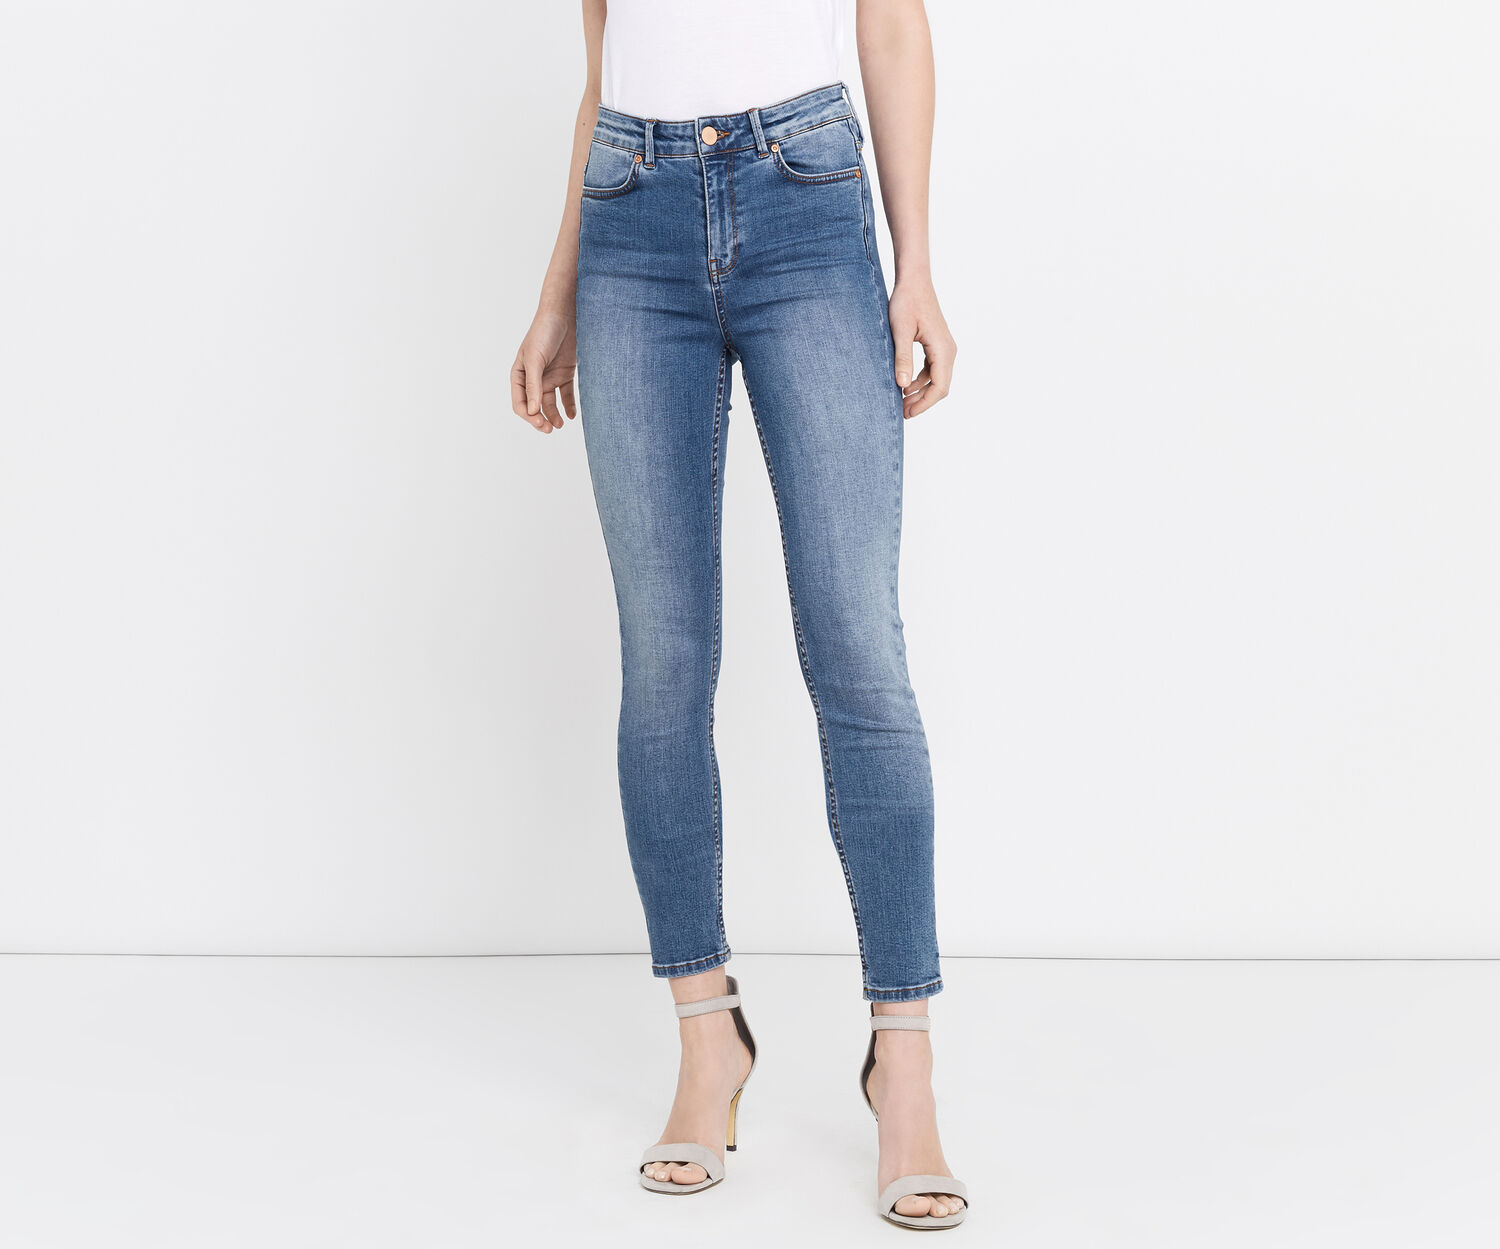 Oasis, STILETTO SKINNY JEANS Light Wash 1